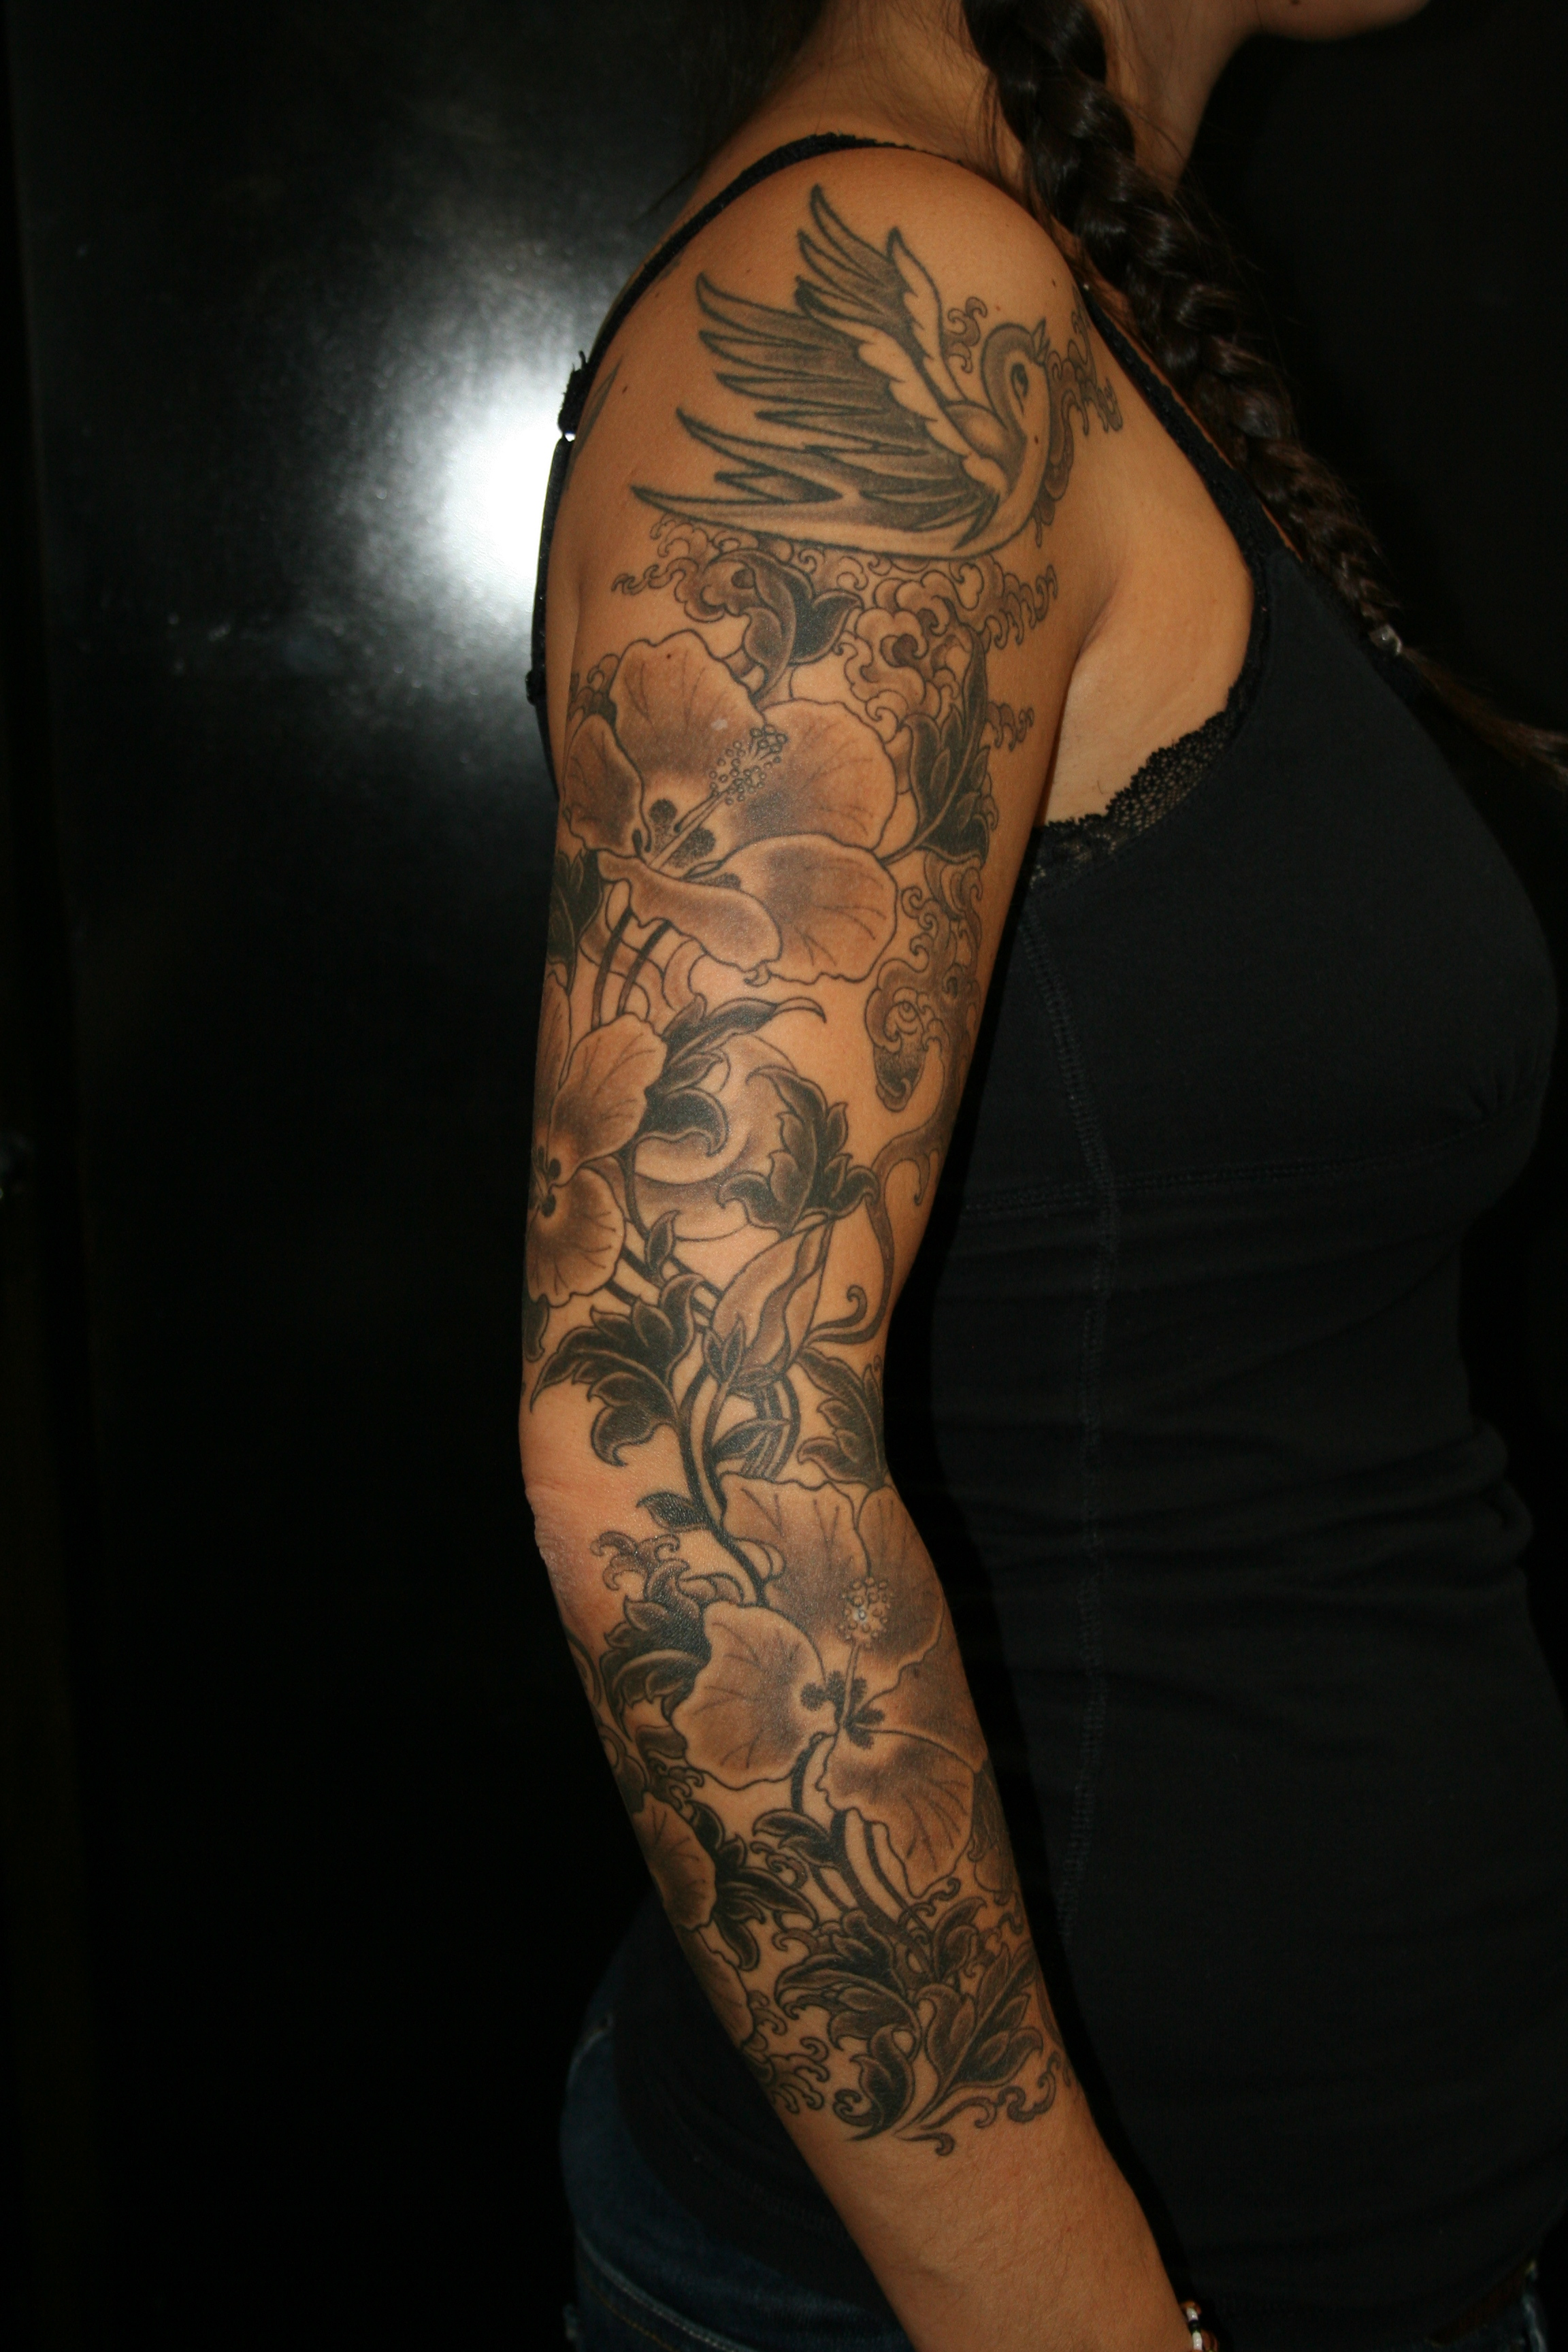 awesome sleeve tattoo design ideas - the xerxes